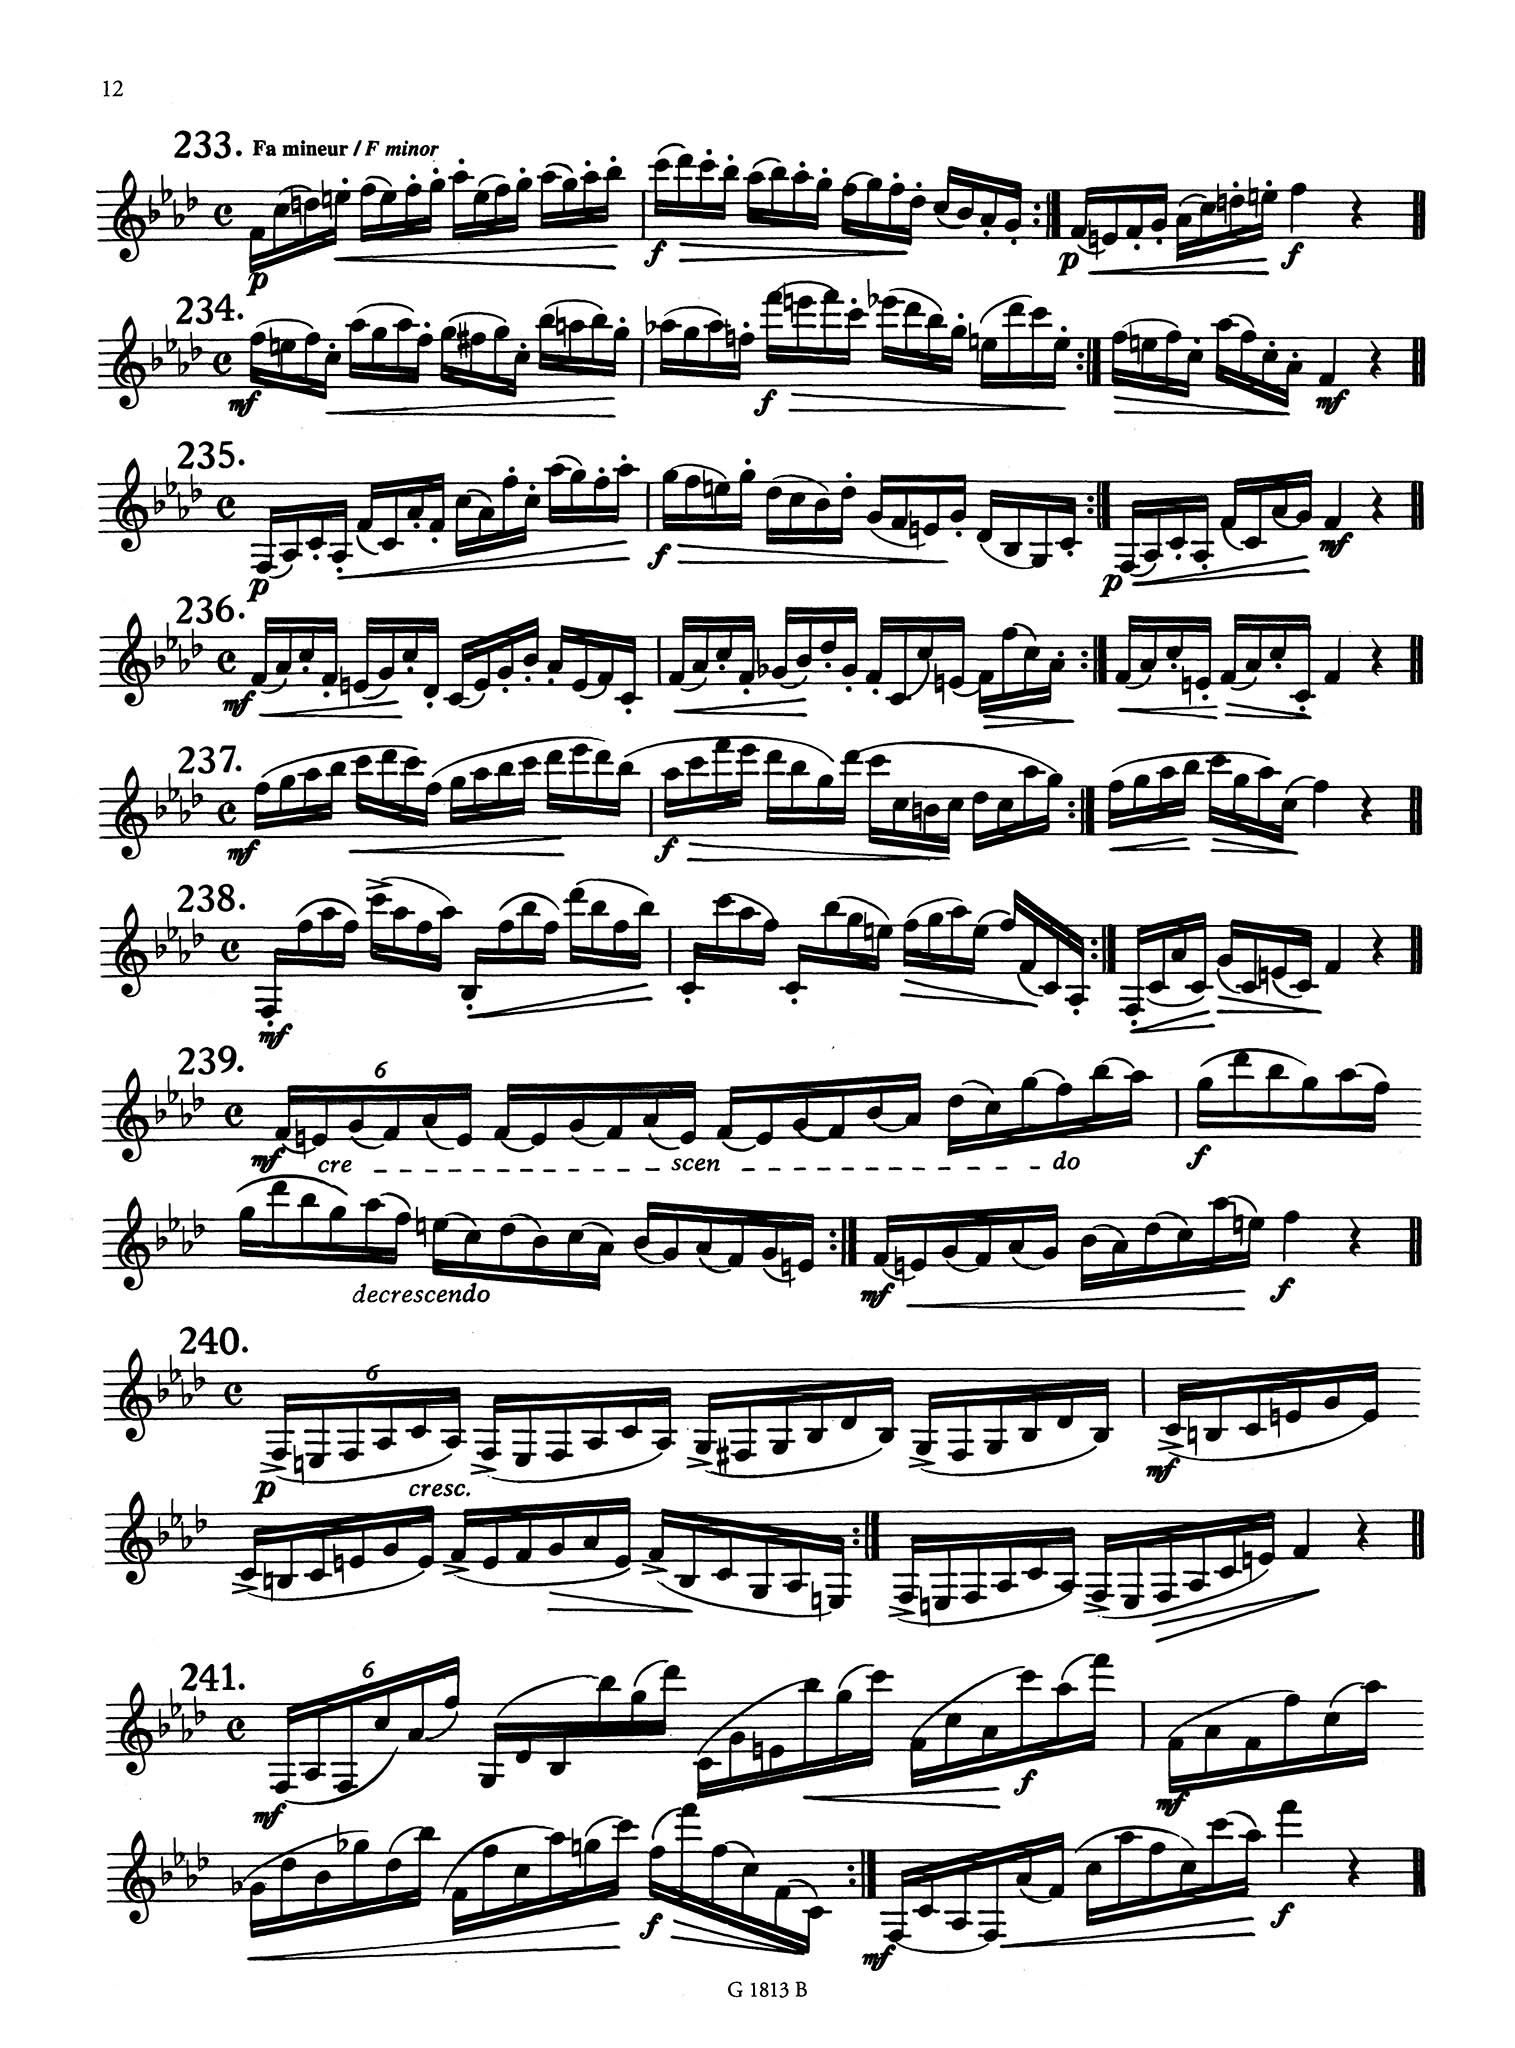 416 Progressive Studies for Clarinet, Book 2: 183 Daily Exercises Page 12